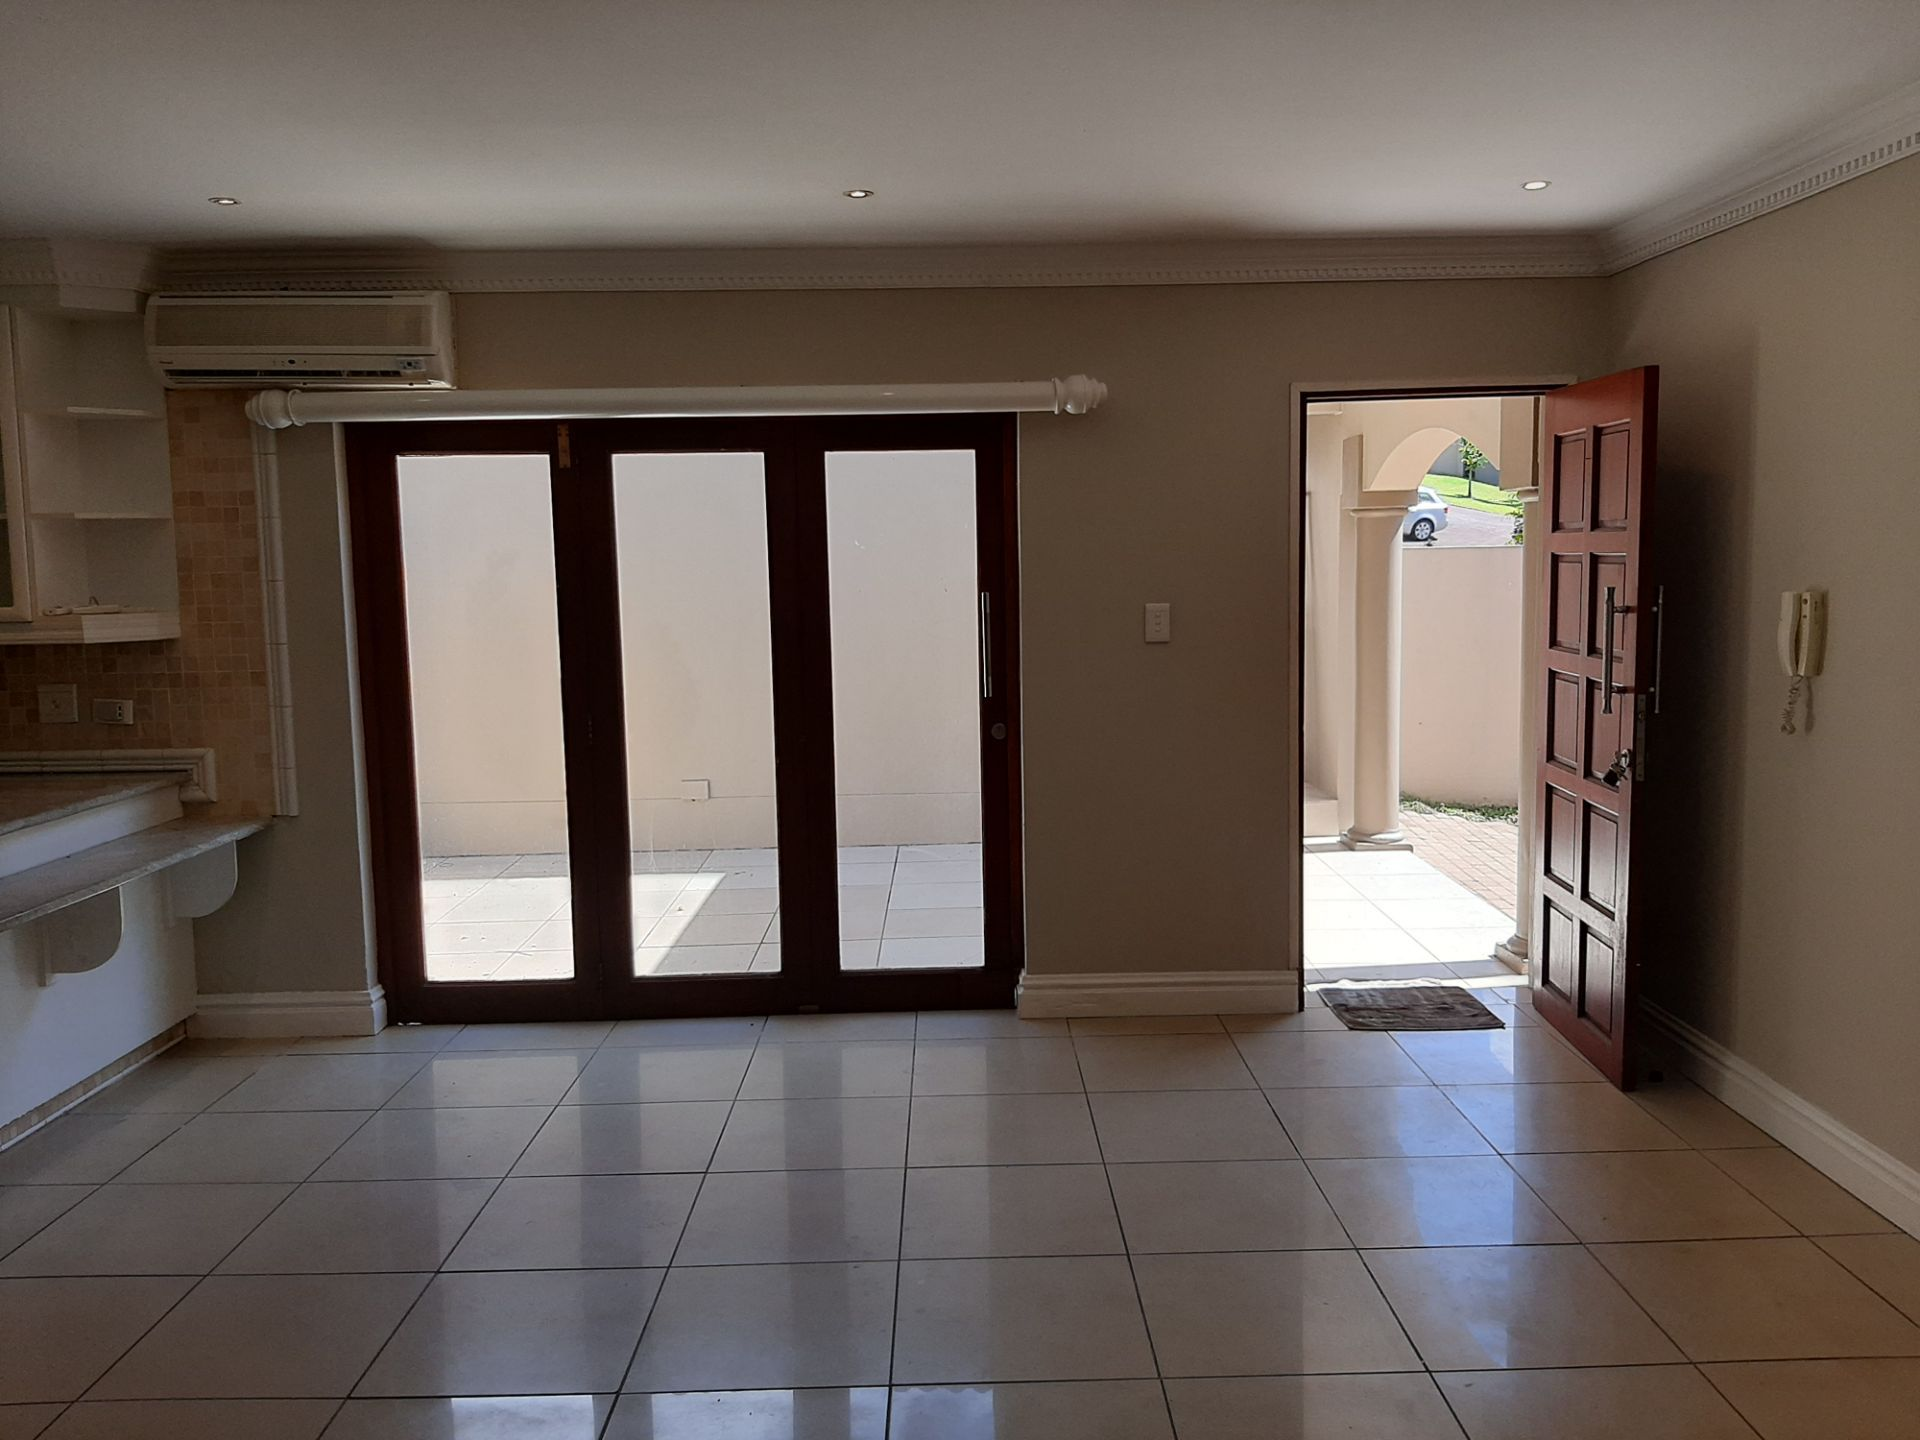 Apartment in Southbroom - Front door and dining area